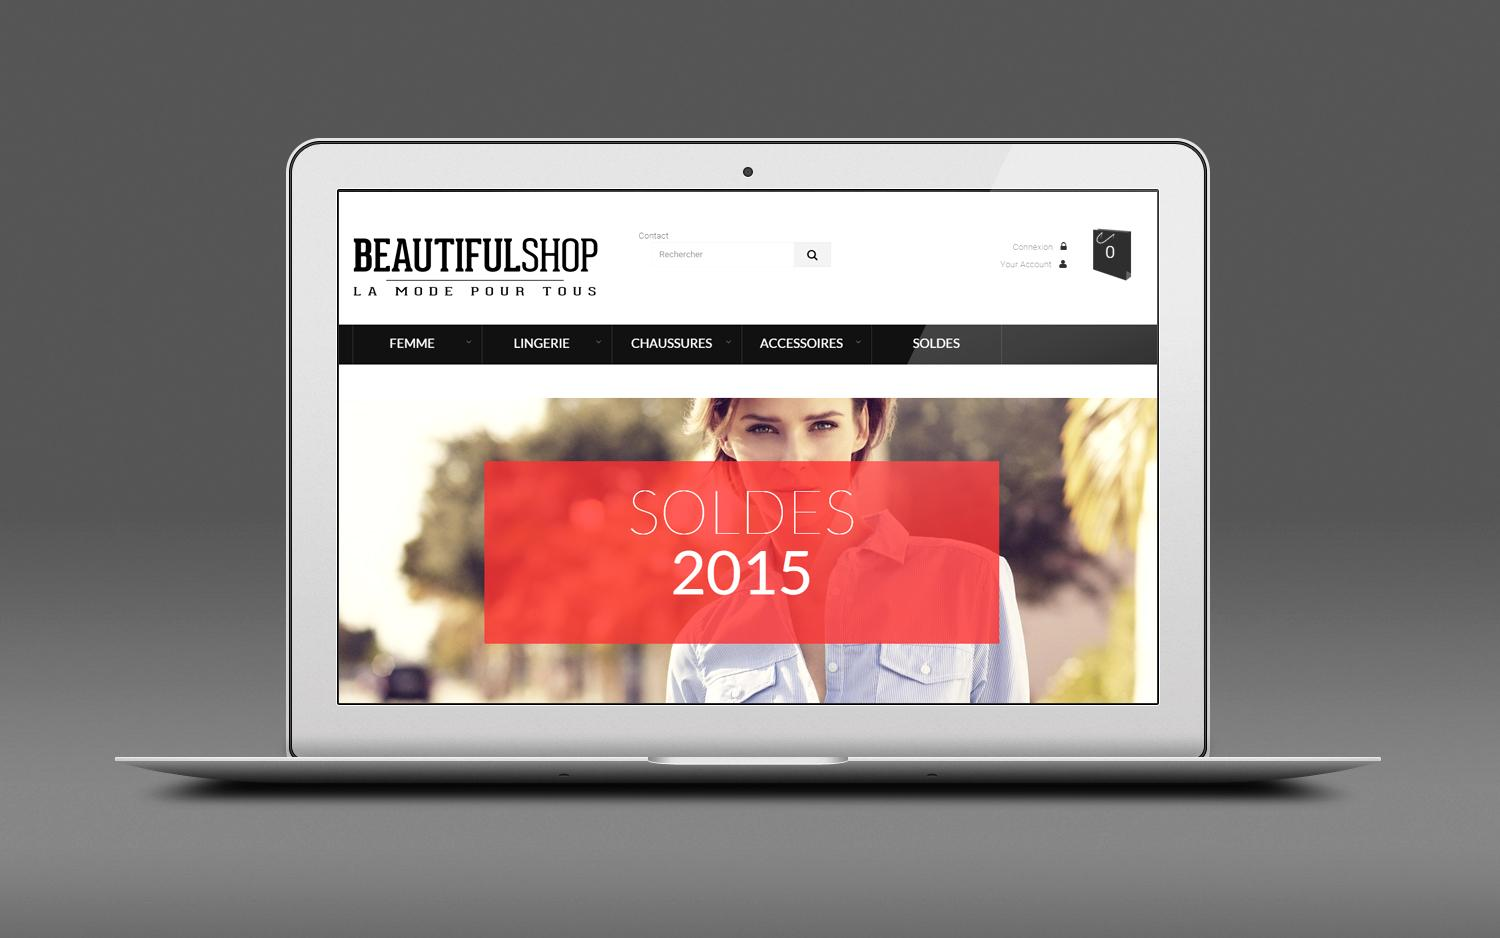 Beautifol shop prototype 001